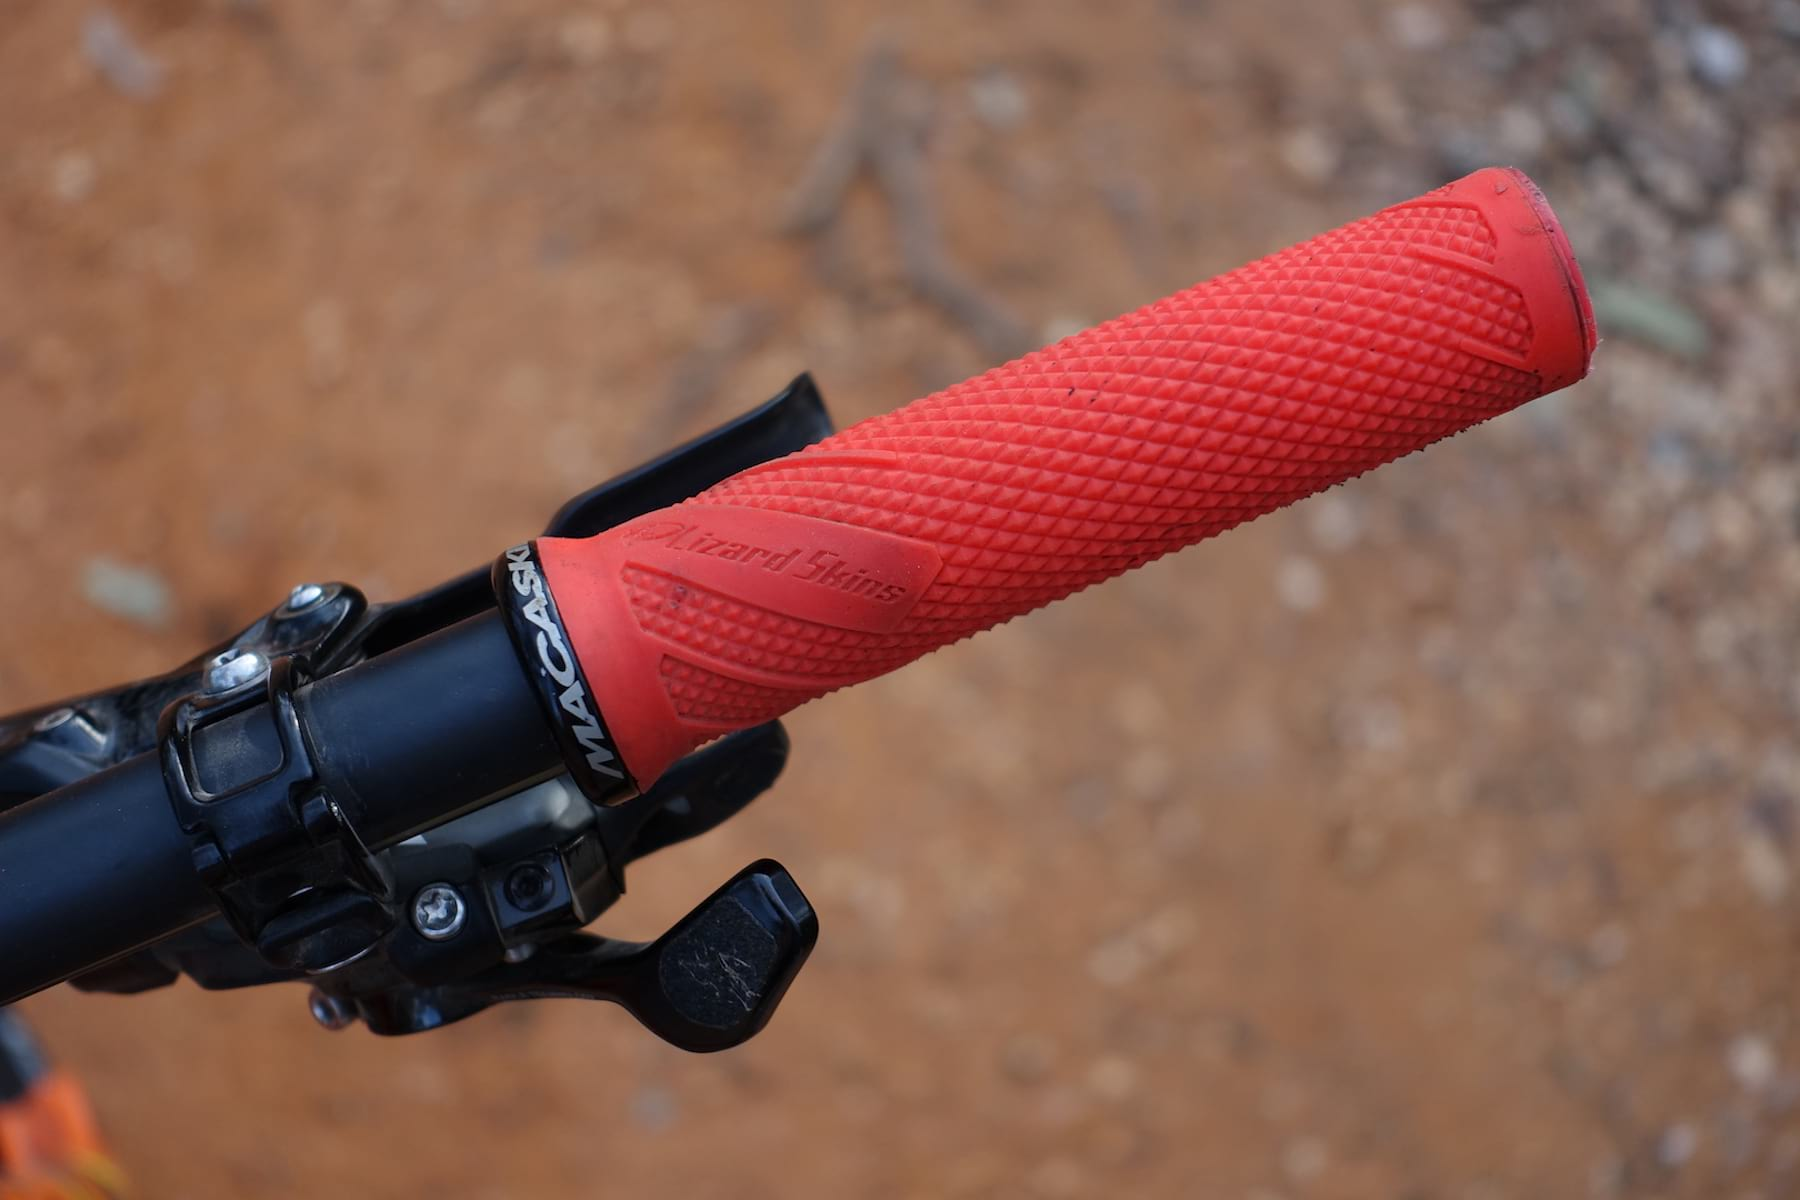 lizard skins macaskill lock-on grips